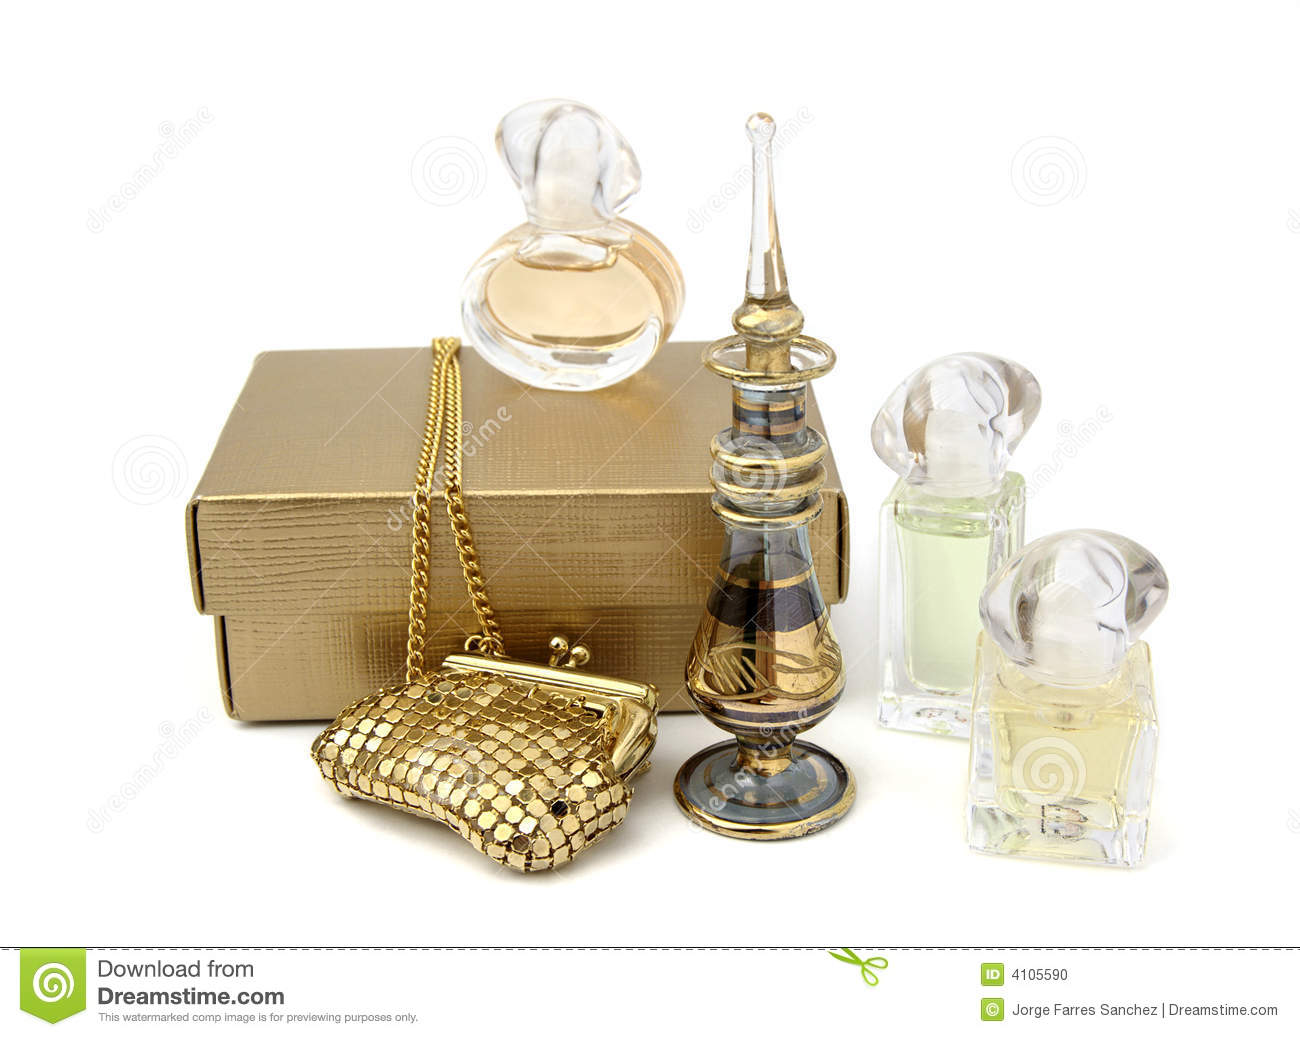 FREE shipping with $50 purchase details FREE store pickup today EXTRA 25% OFF use HOLIDAY25 get your pass. Search by Keyword or Web ID. Account Icon. Account. Account Icon. Account Give her options with this 8-piece gift set by Juicy Couture. FRAGRANCE DETAILS.